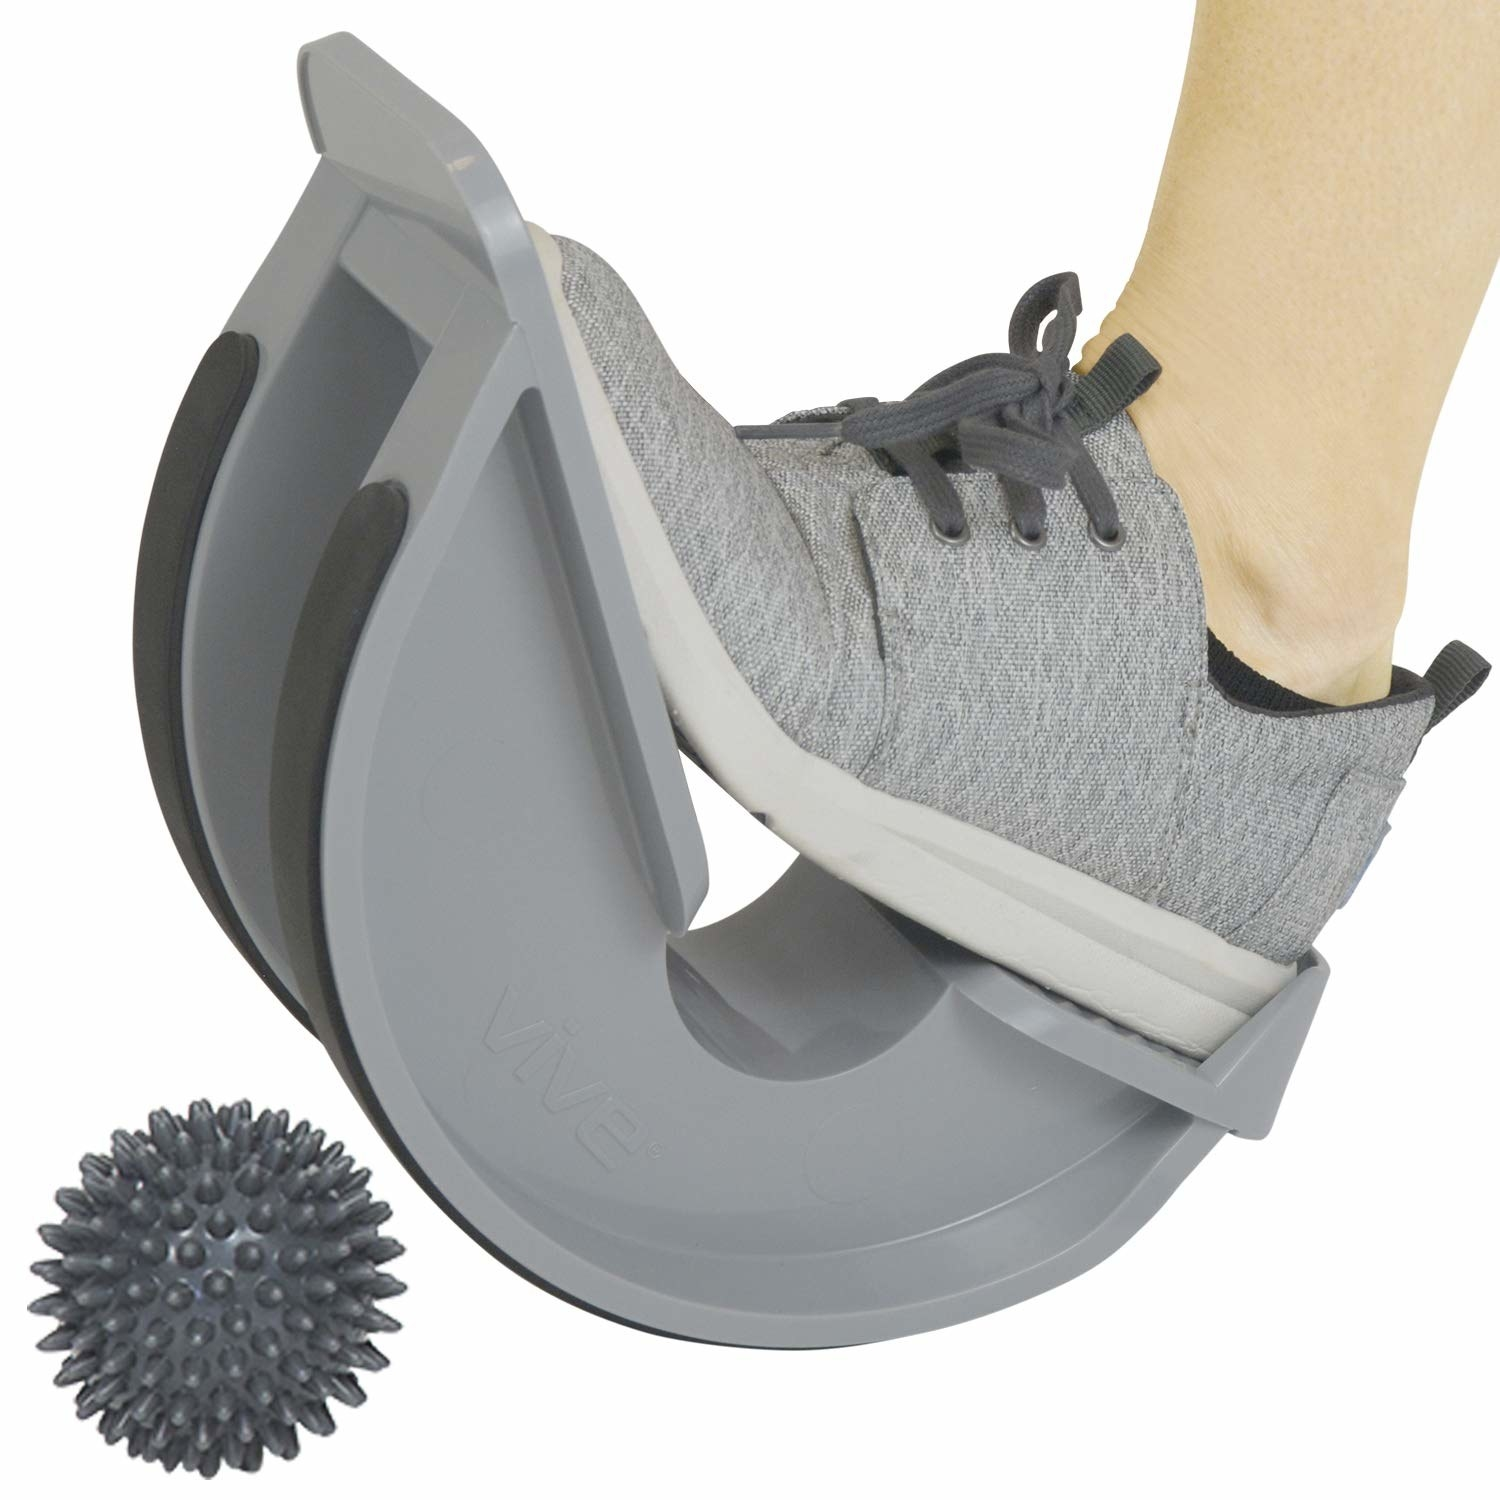 foot stretches on u-shaped stretcher